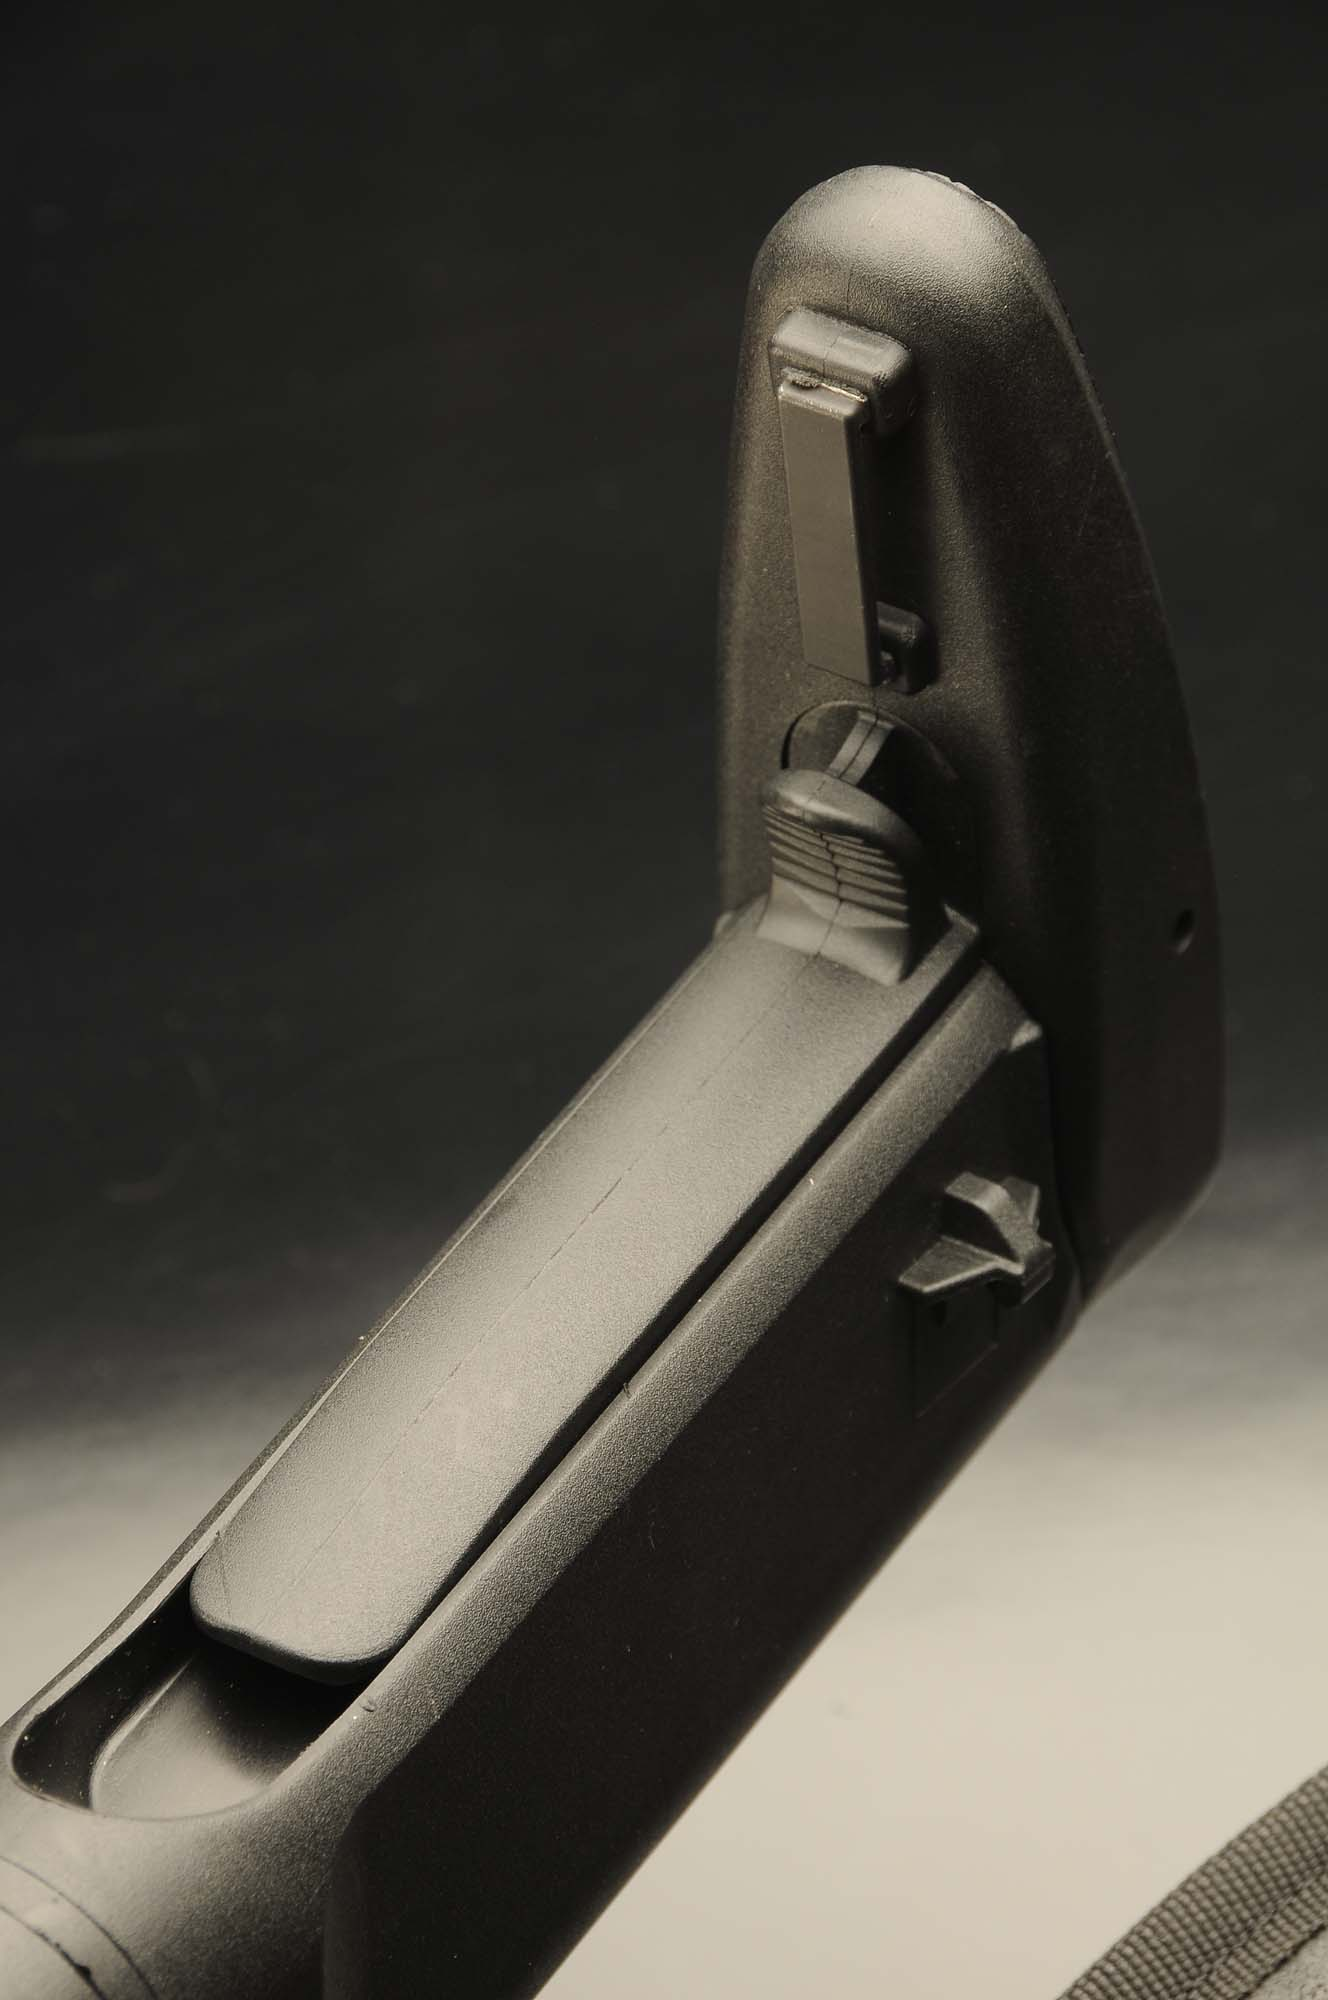 Detail of the lever that allows extension of the stock's butt pad